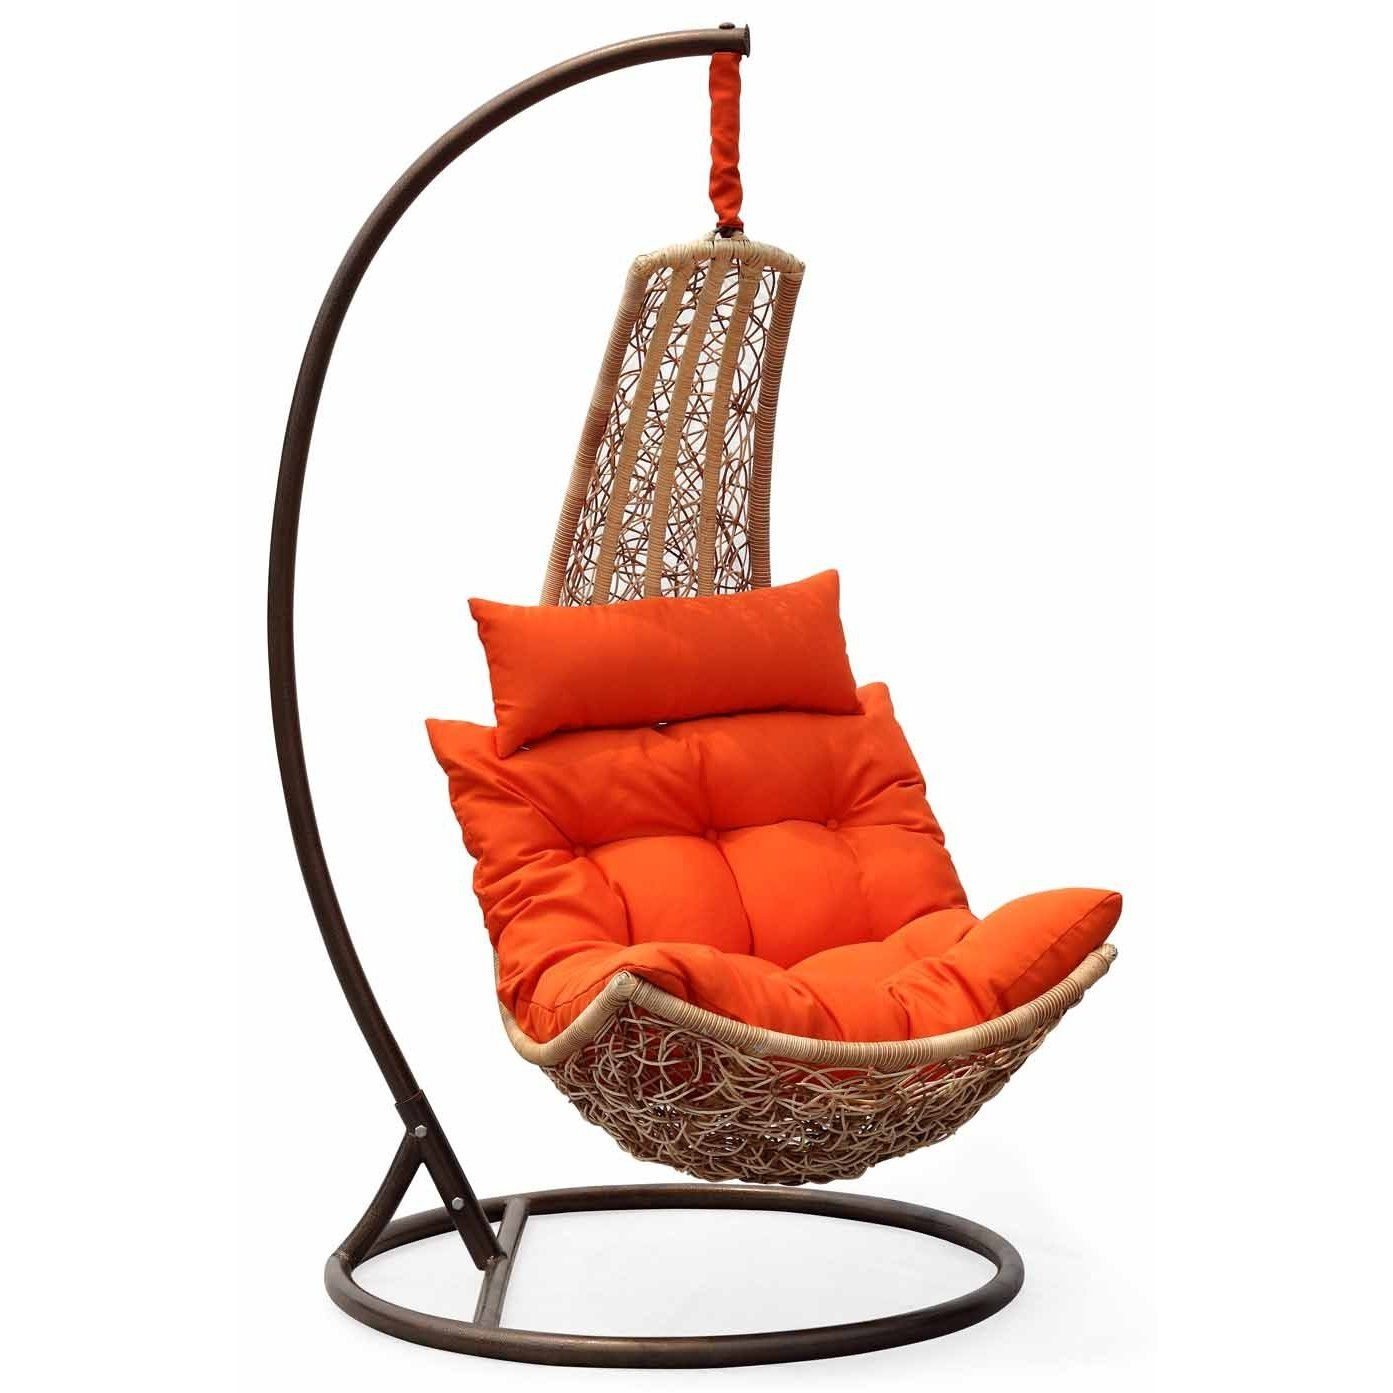 Not digginu the orange but the design heck yes for the home